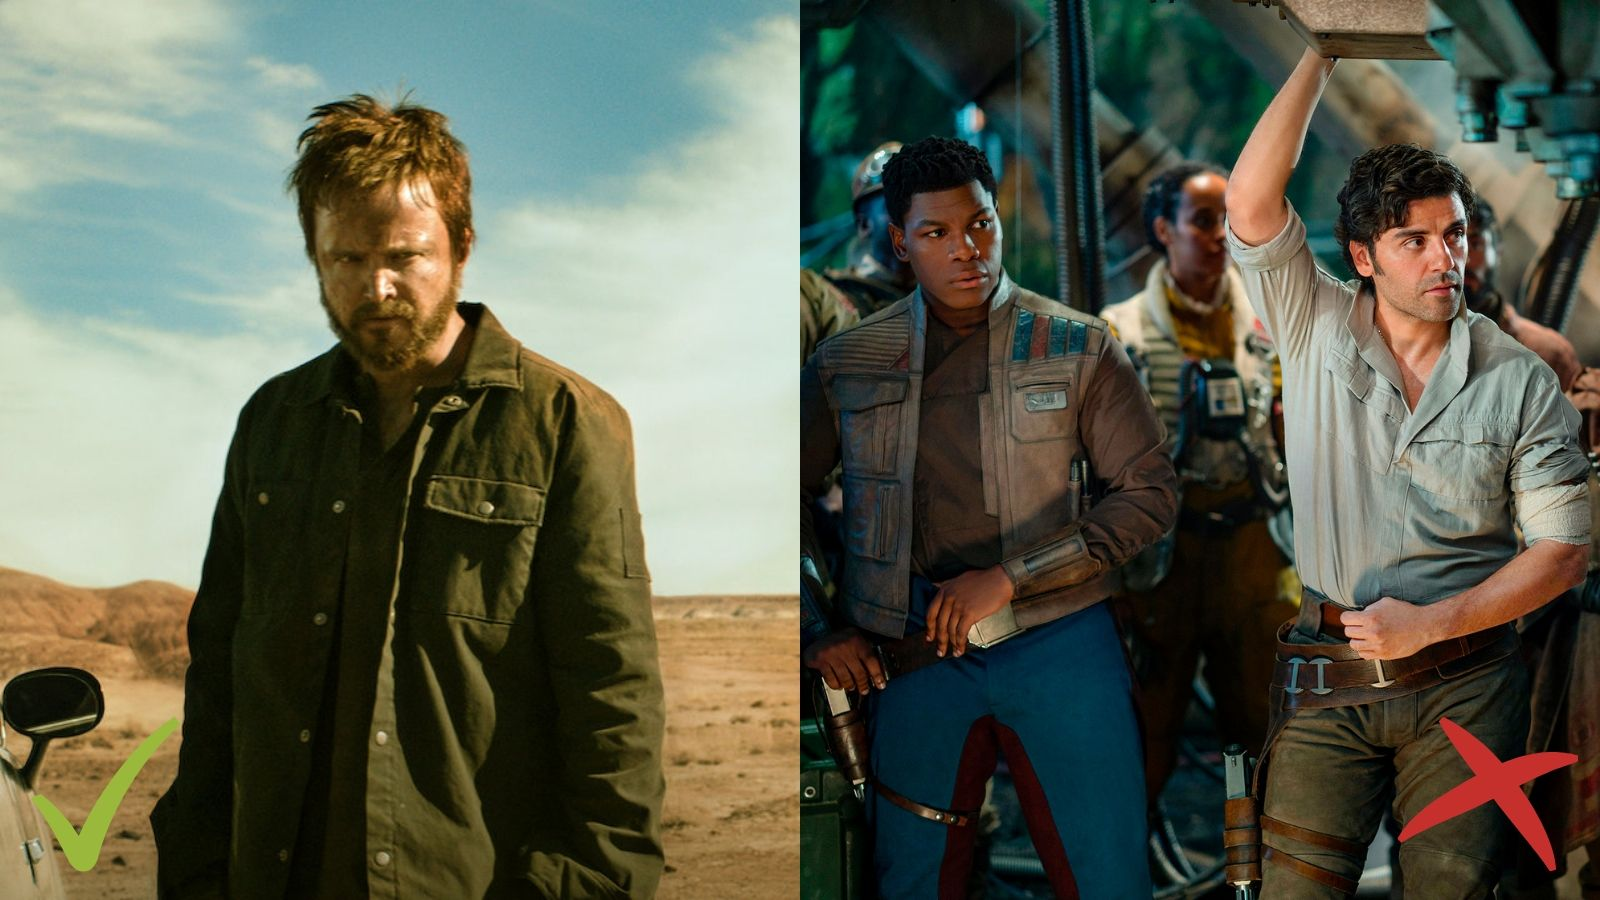 El Camino: A Breaking Bad Movie, Star Wars: The Rise of Skywalker, Zvaigžņu kari: Skaivokera atdzimšana